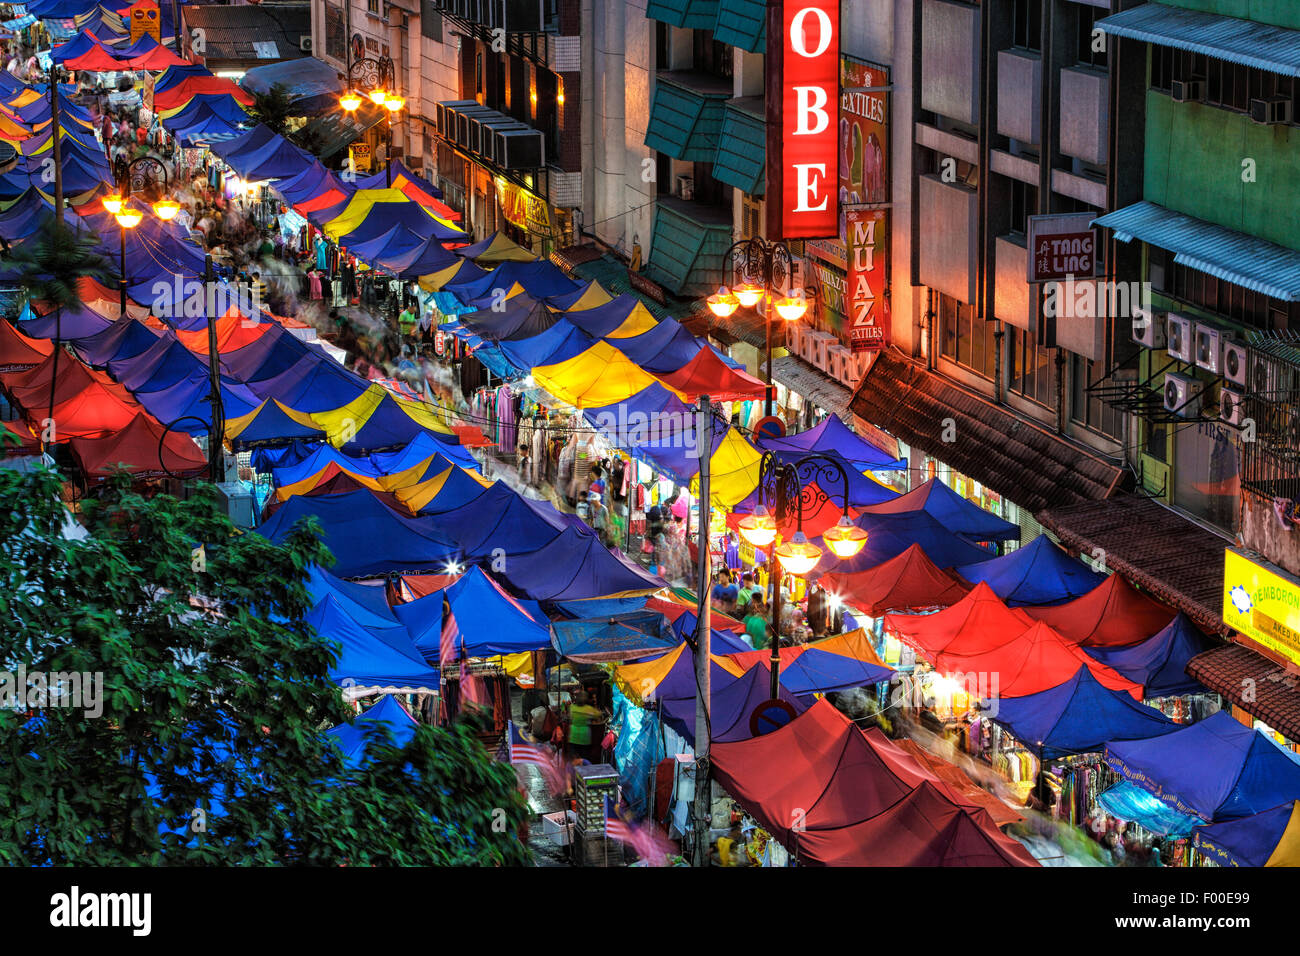 The night market of Kuala Lumpur during the month of Ramadhan. - Stock Image